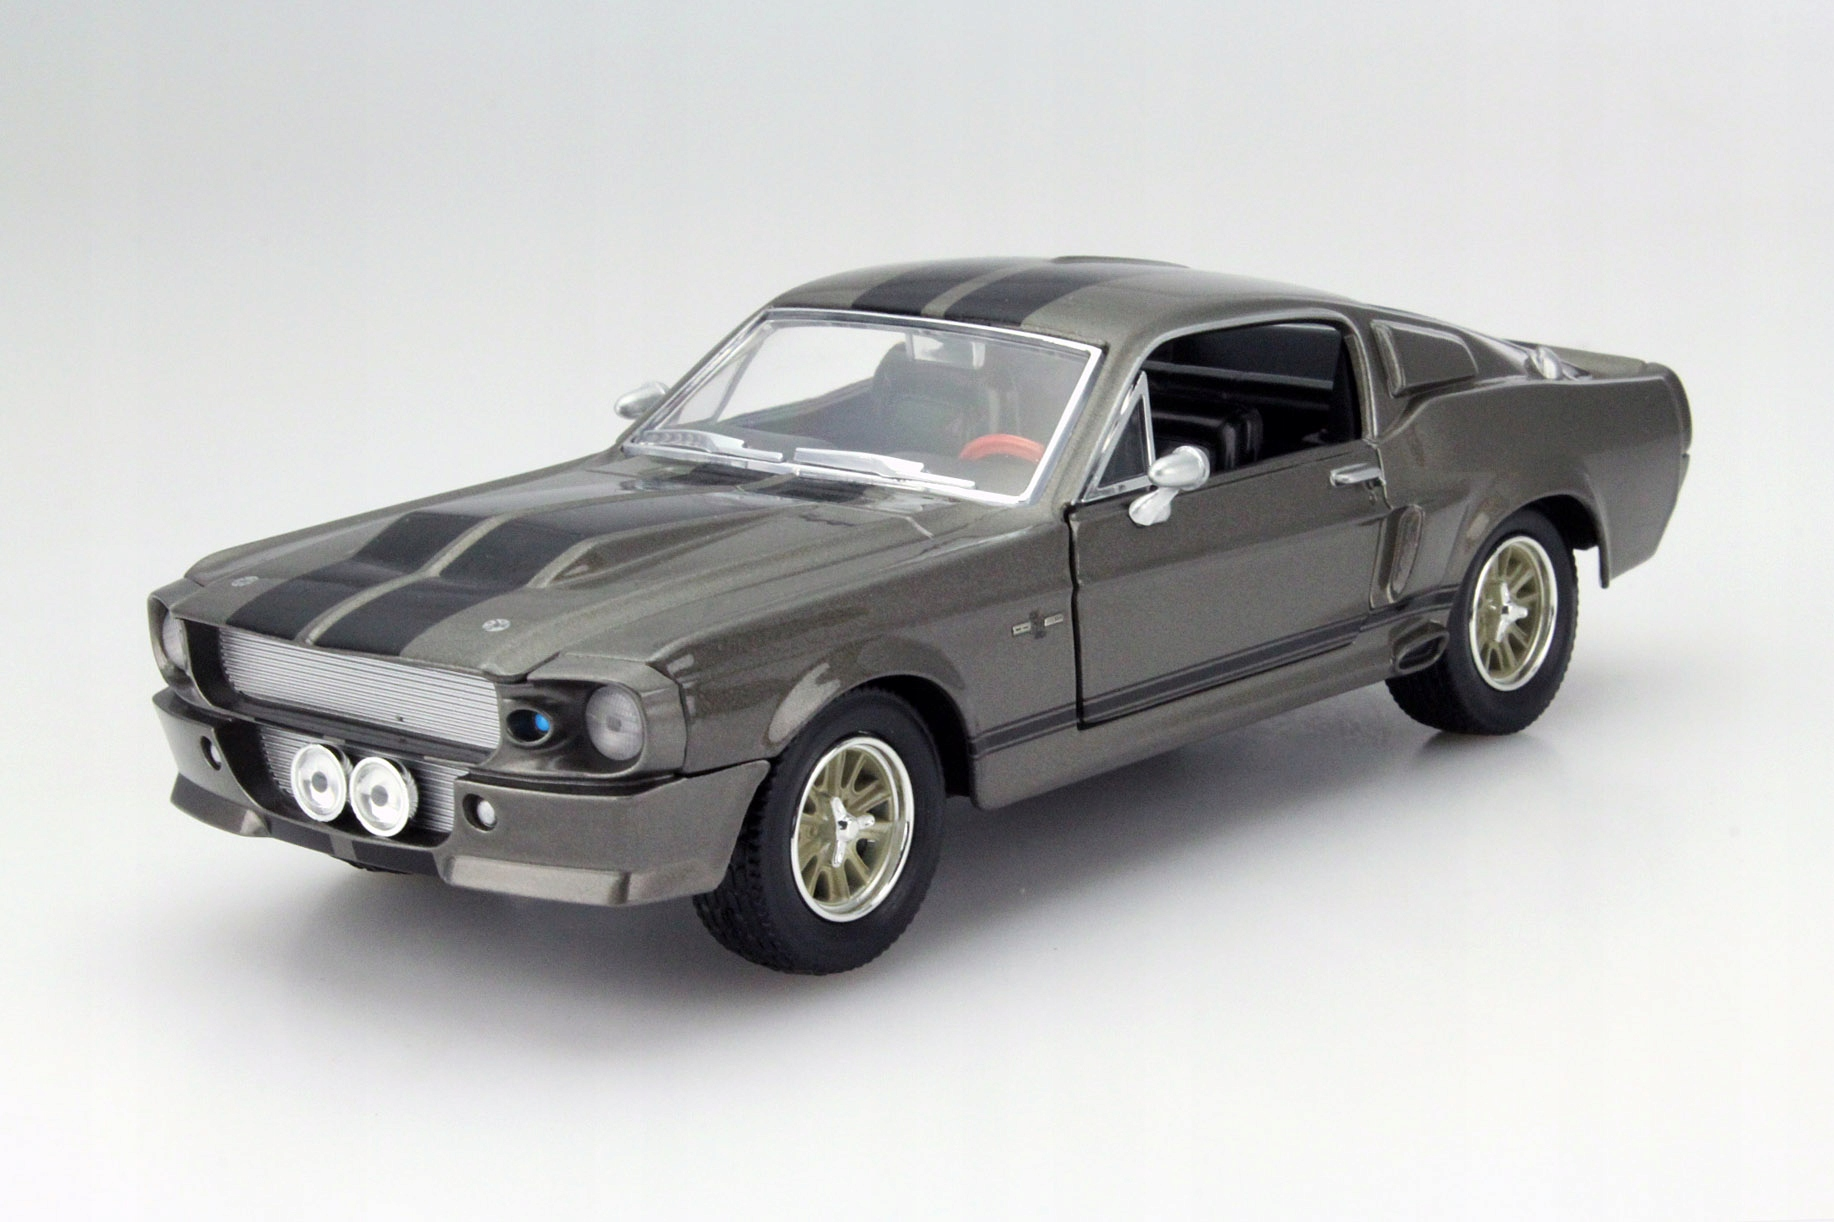 GREENLIGHT 1967 FORD SHELBY MUSTANG ELEANOR 1 24